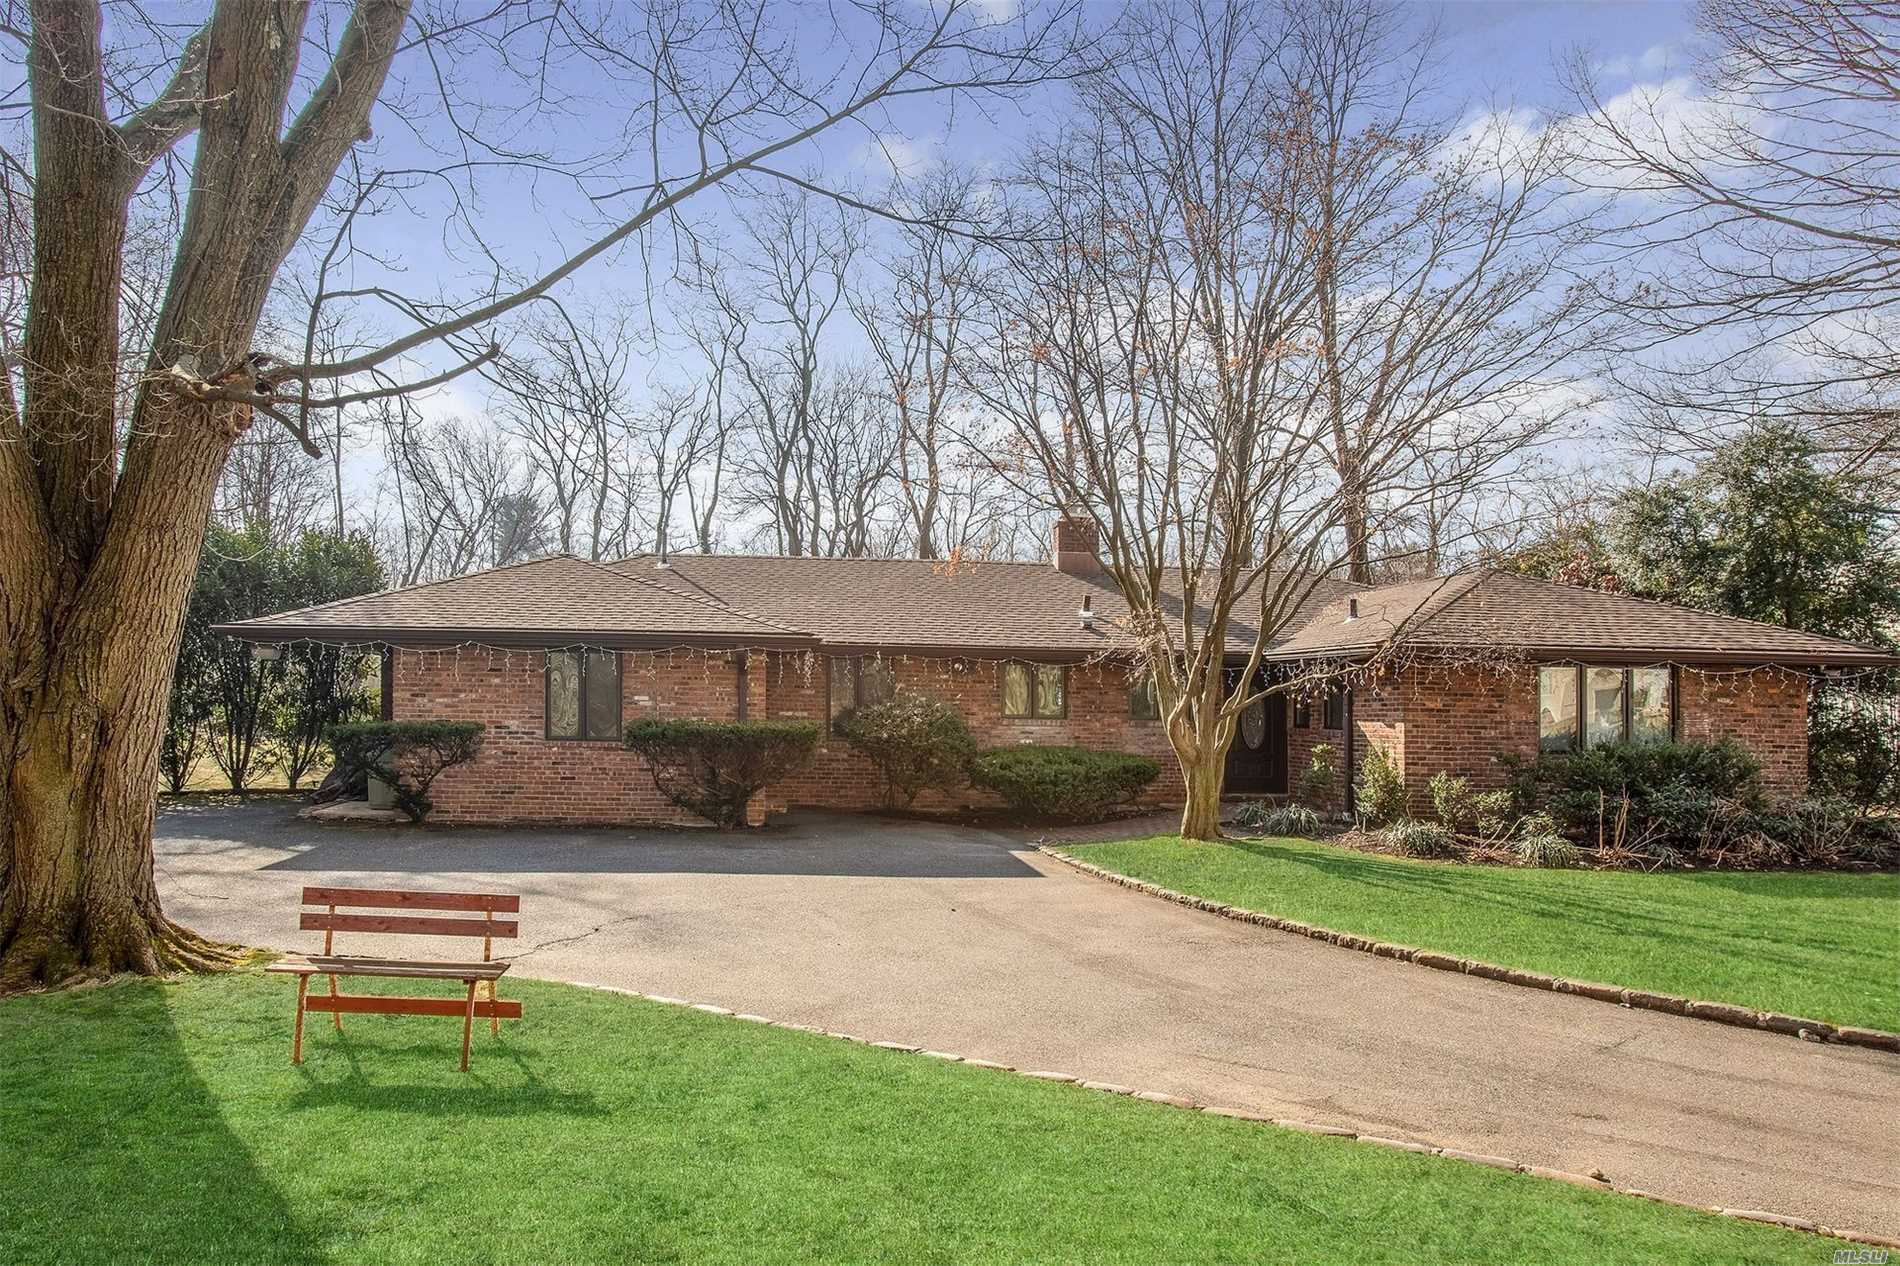 Beautifully Renovated Expanded Ranch Set On .569 Acre Of Professionally Landscaped Property Located Within A Private Cul De Sac. Inviting Living Room With Expansive Yard Views. Formal Dining Room, Gourmet Eat-In-Kitchen, Large Master En Suite, Three Additional Bedrooms, Great Closet Space Throughout.New Roof, 8 Surveillance Cameras, Full Lower Level.